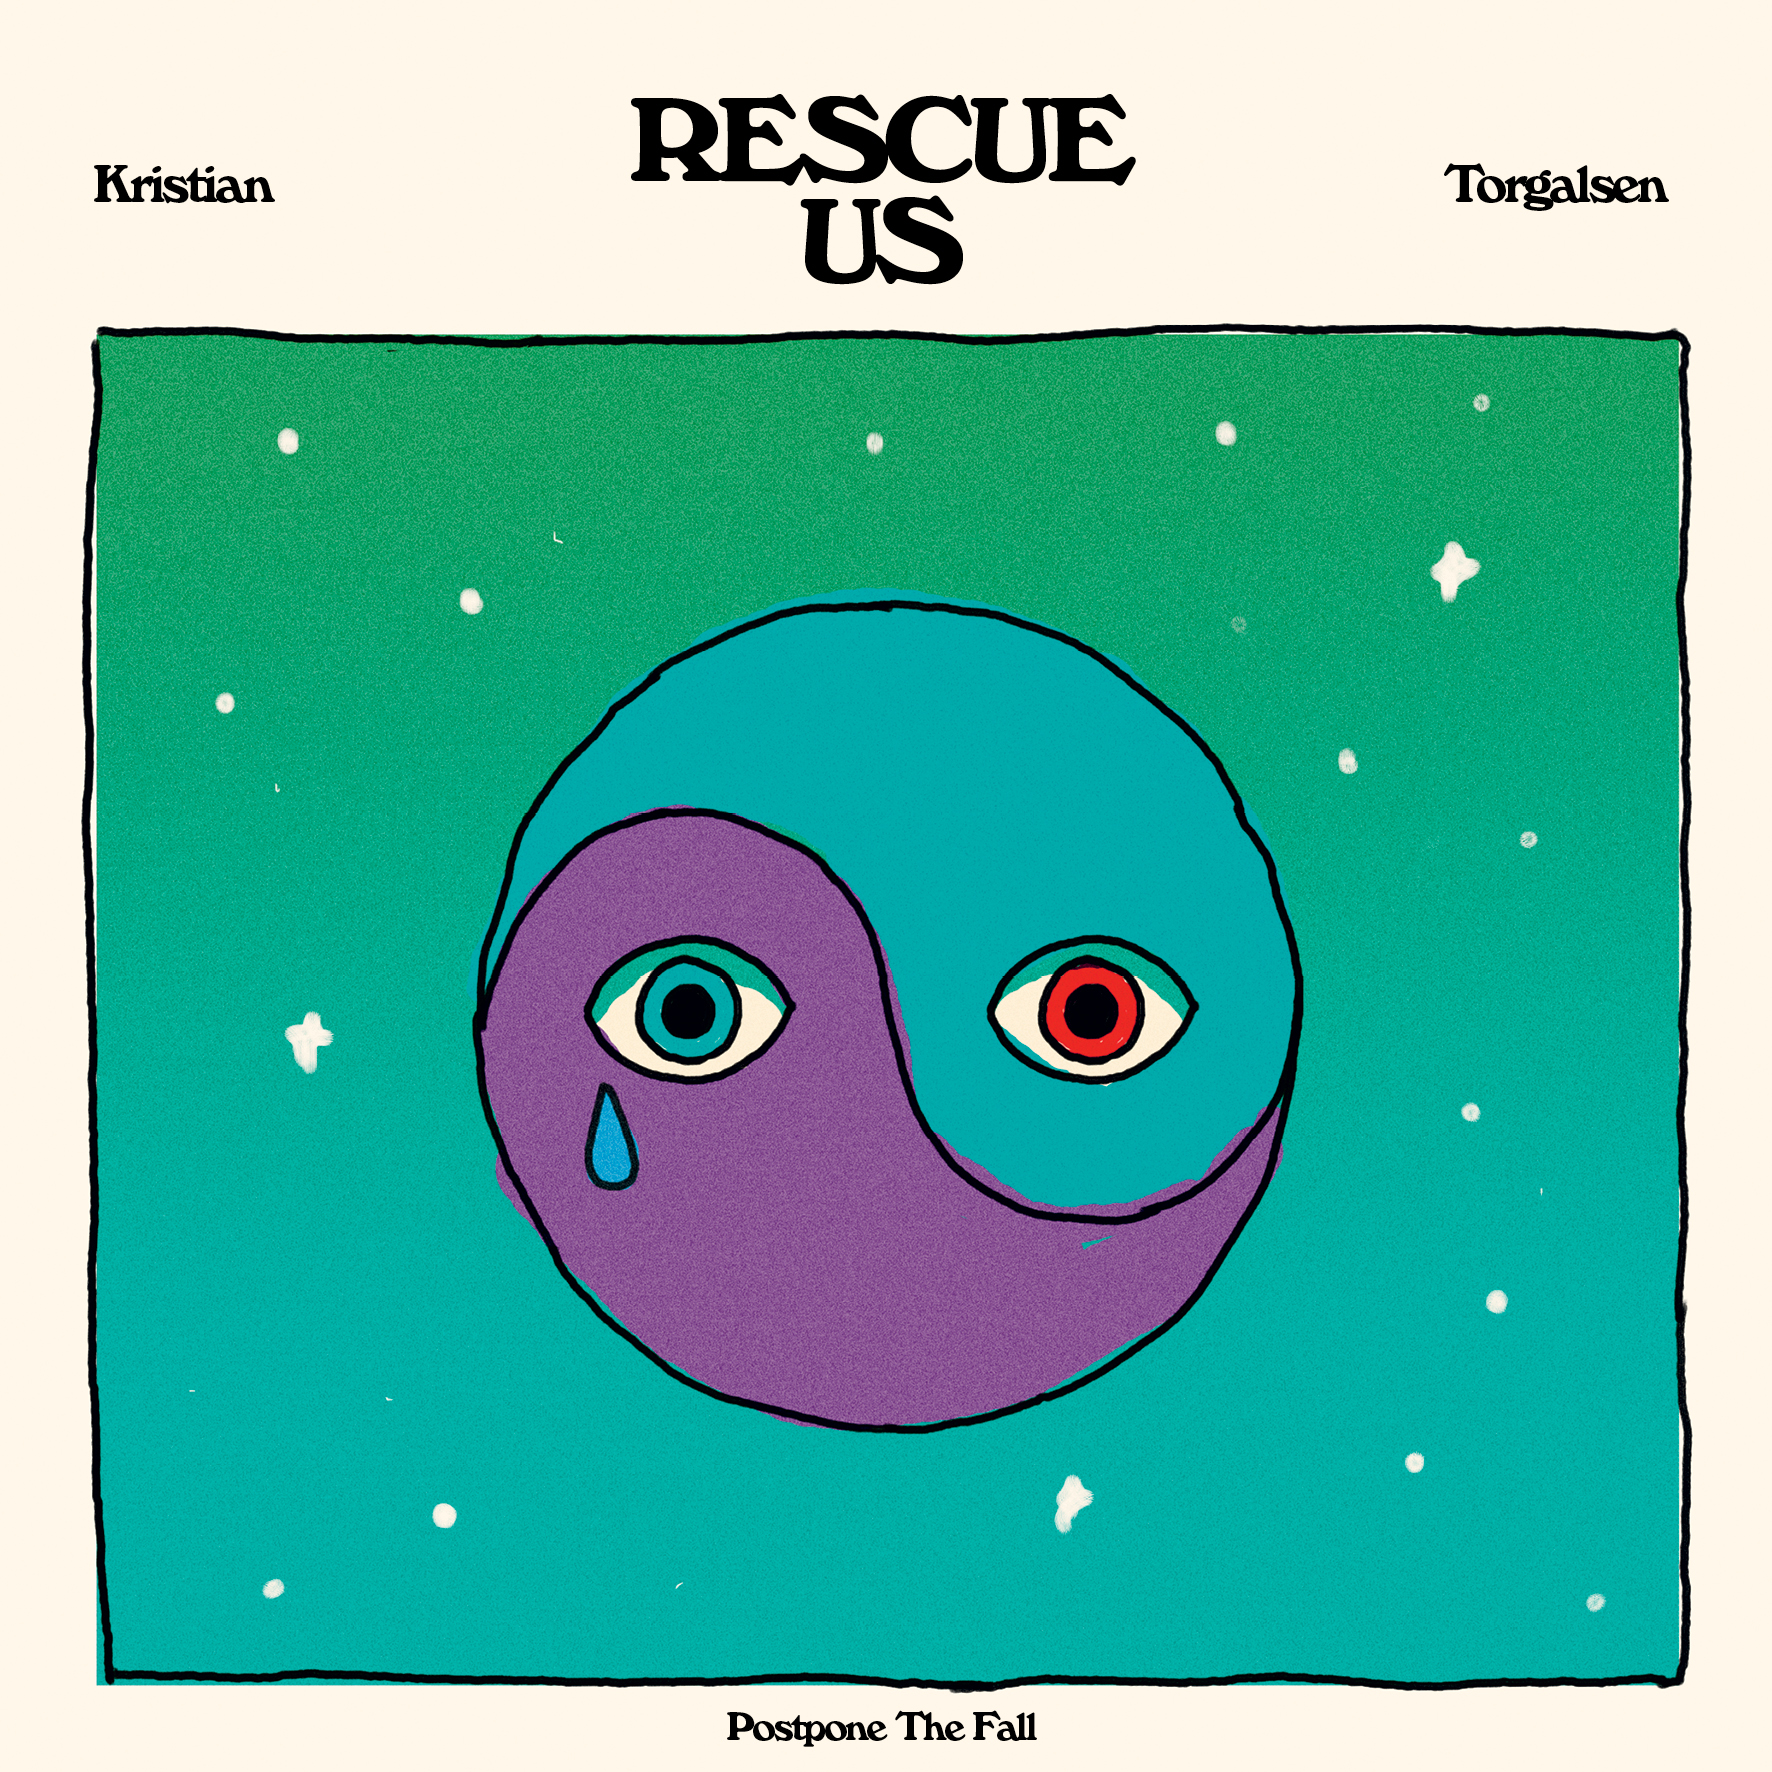 Rescue Us - Released 13. october 2017